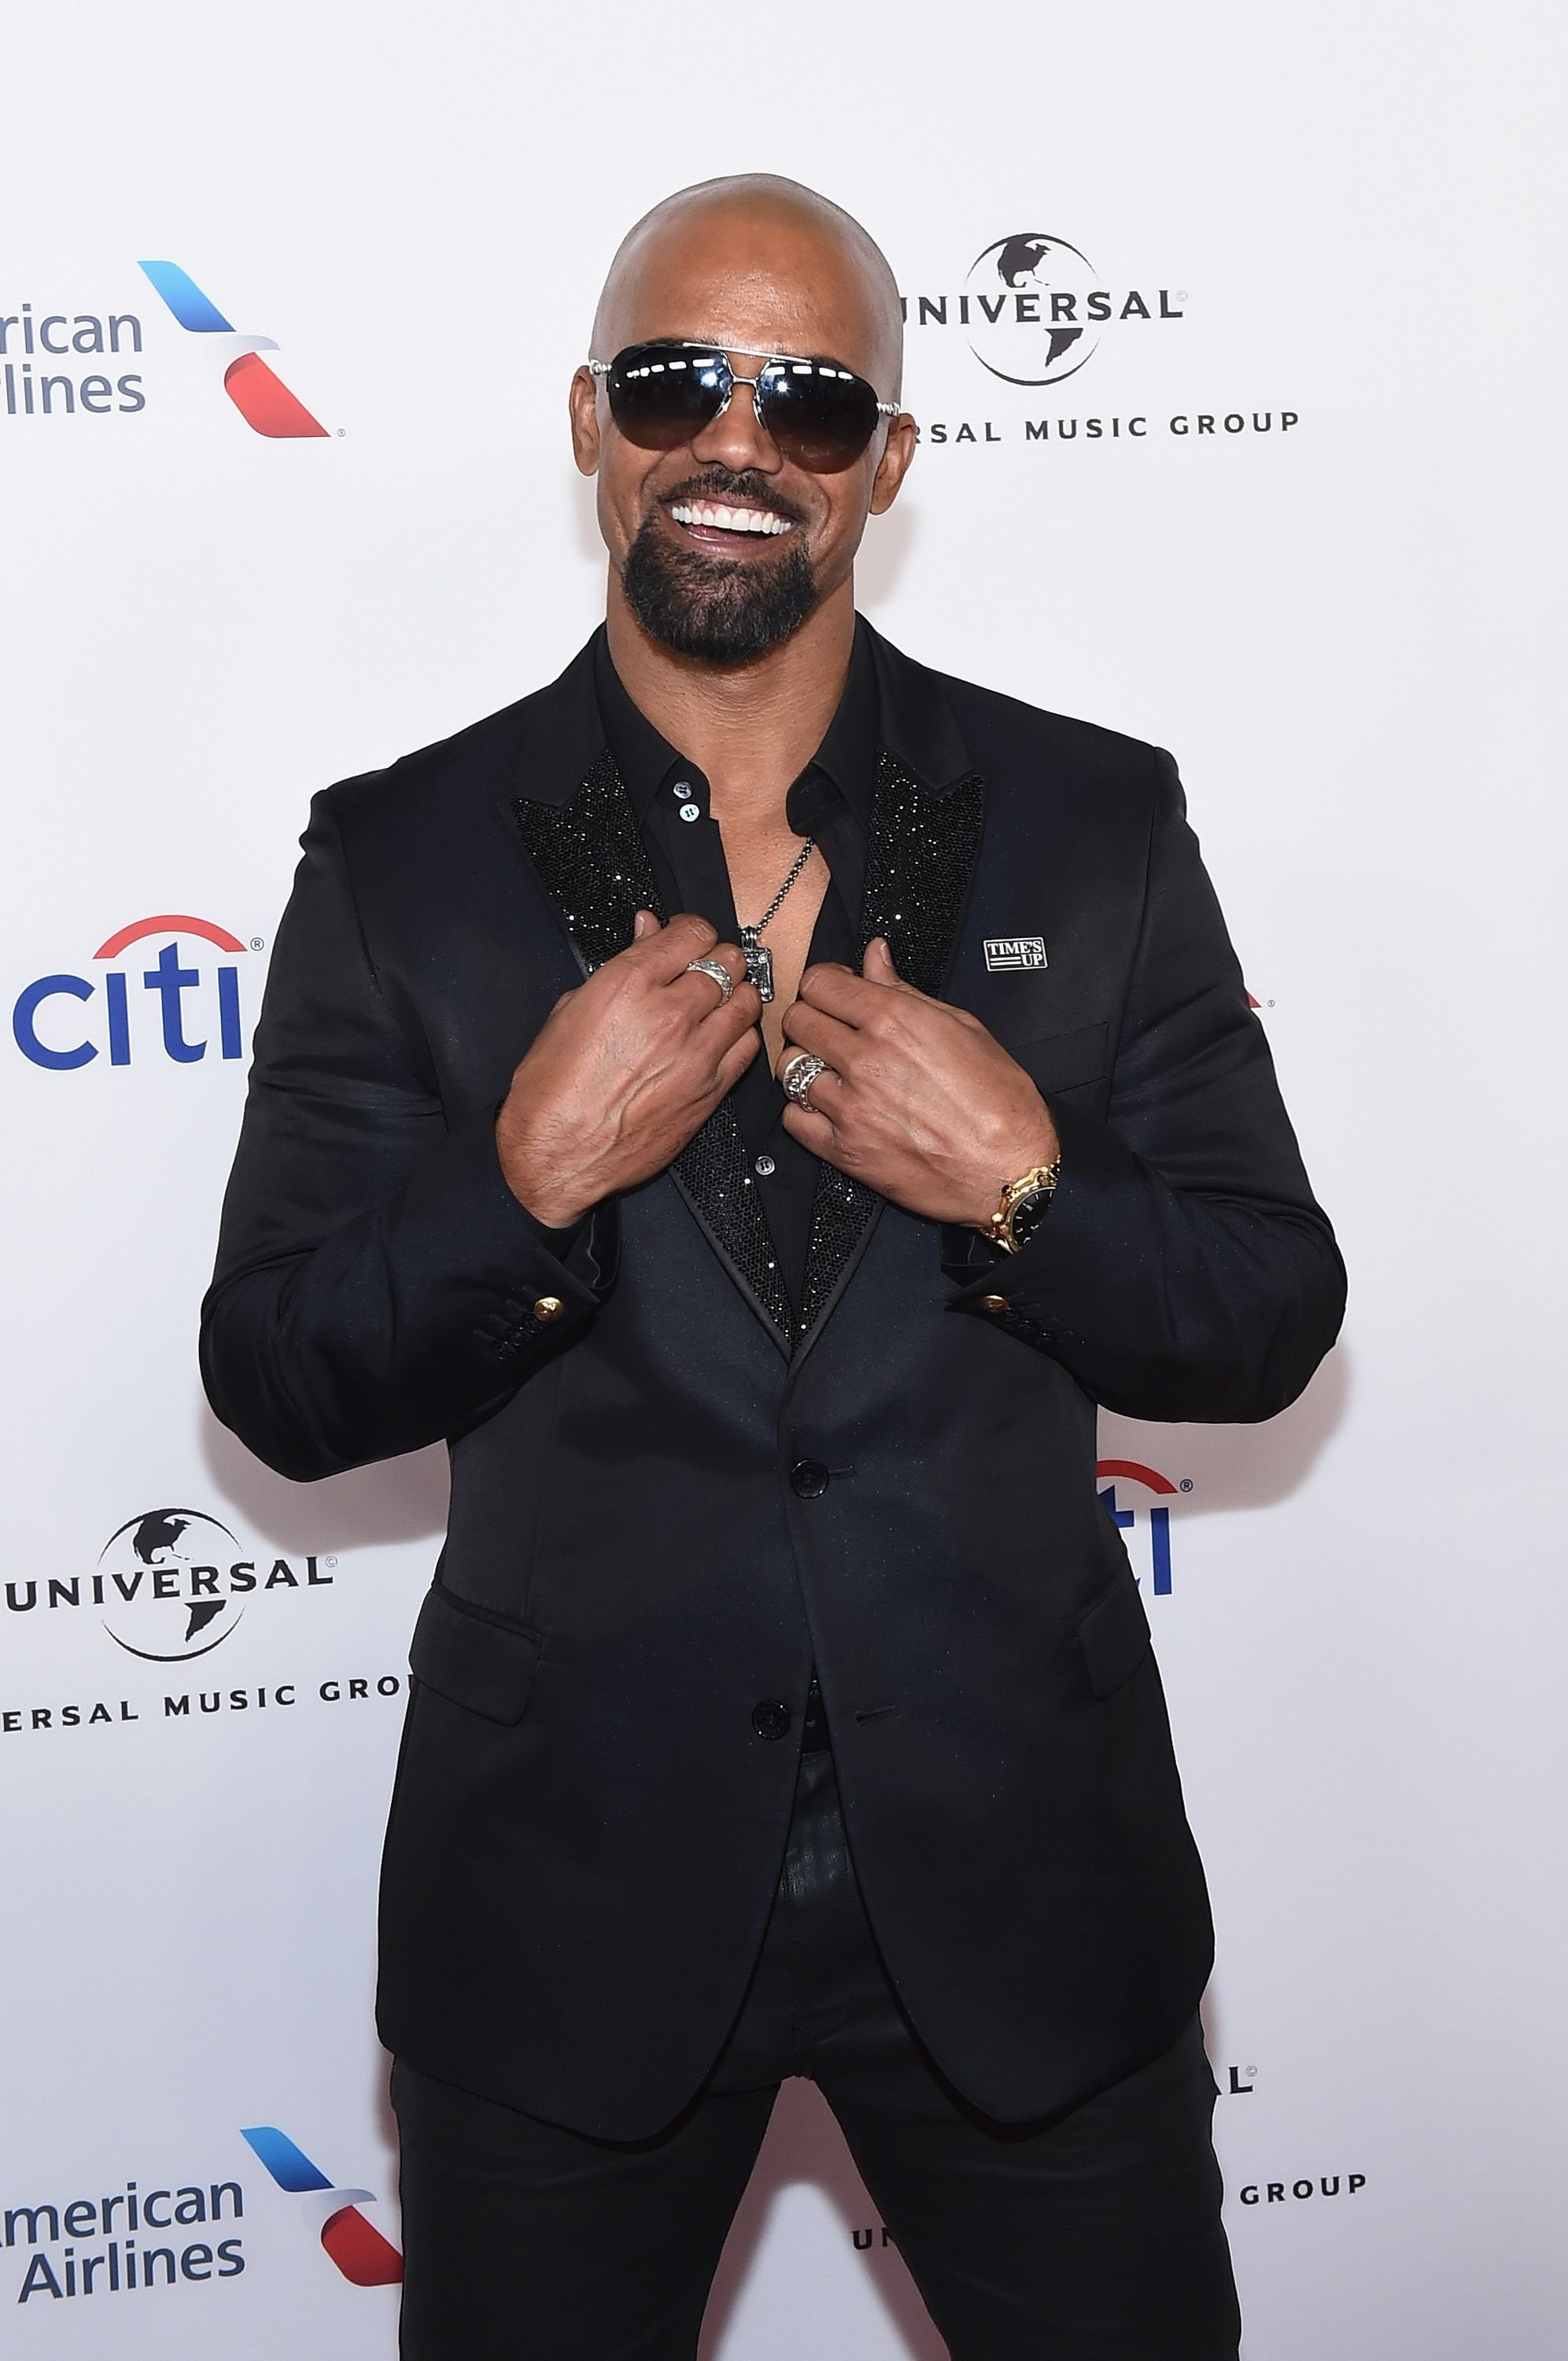 Shemar Moore at the Universal Music Group's After Party in New York City on January 28, 2018. | Photo: Getty Images